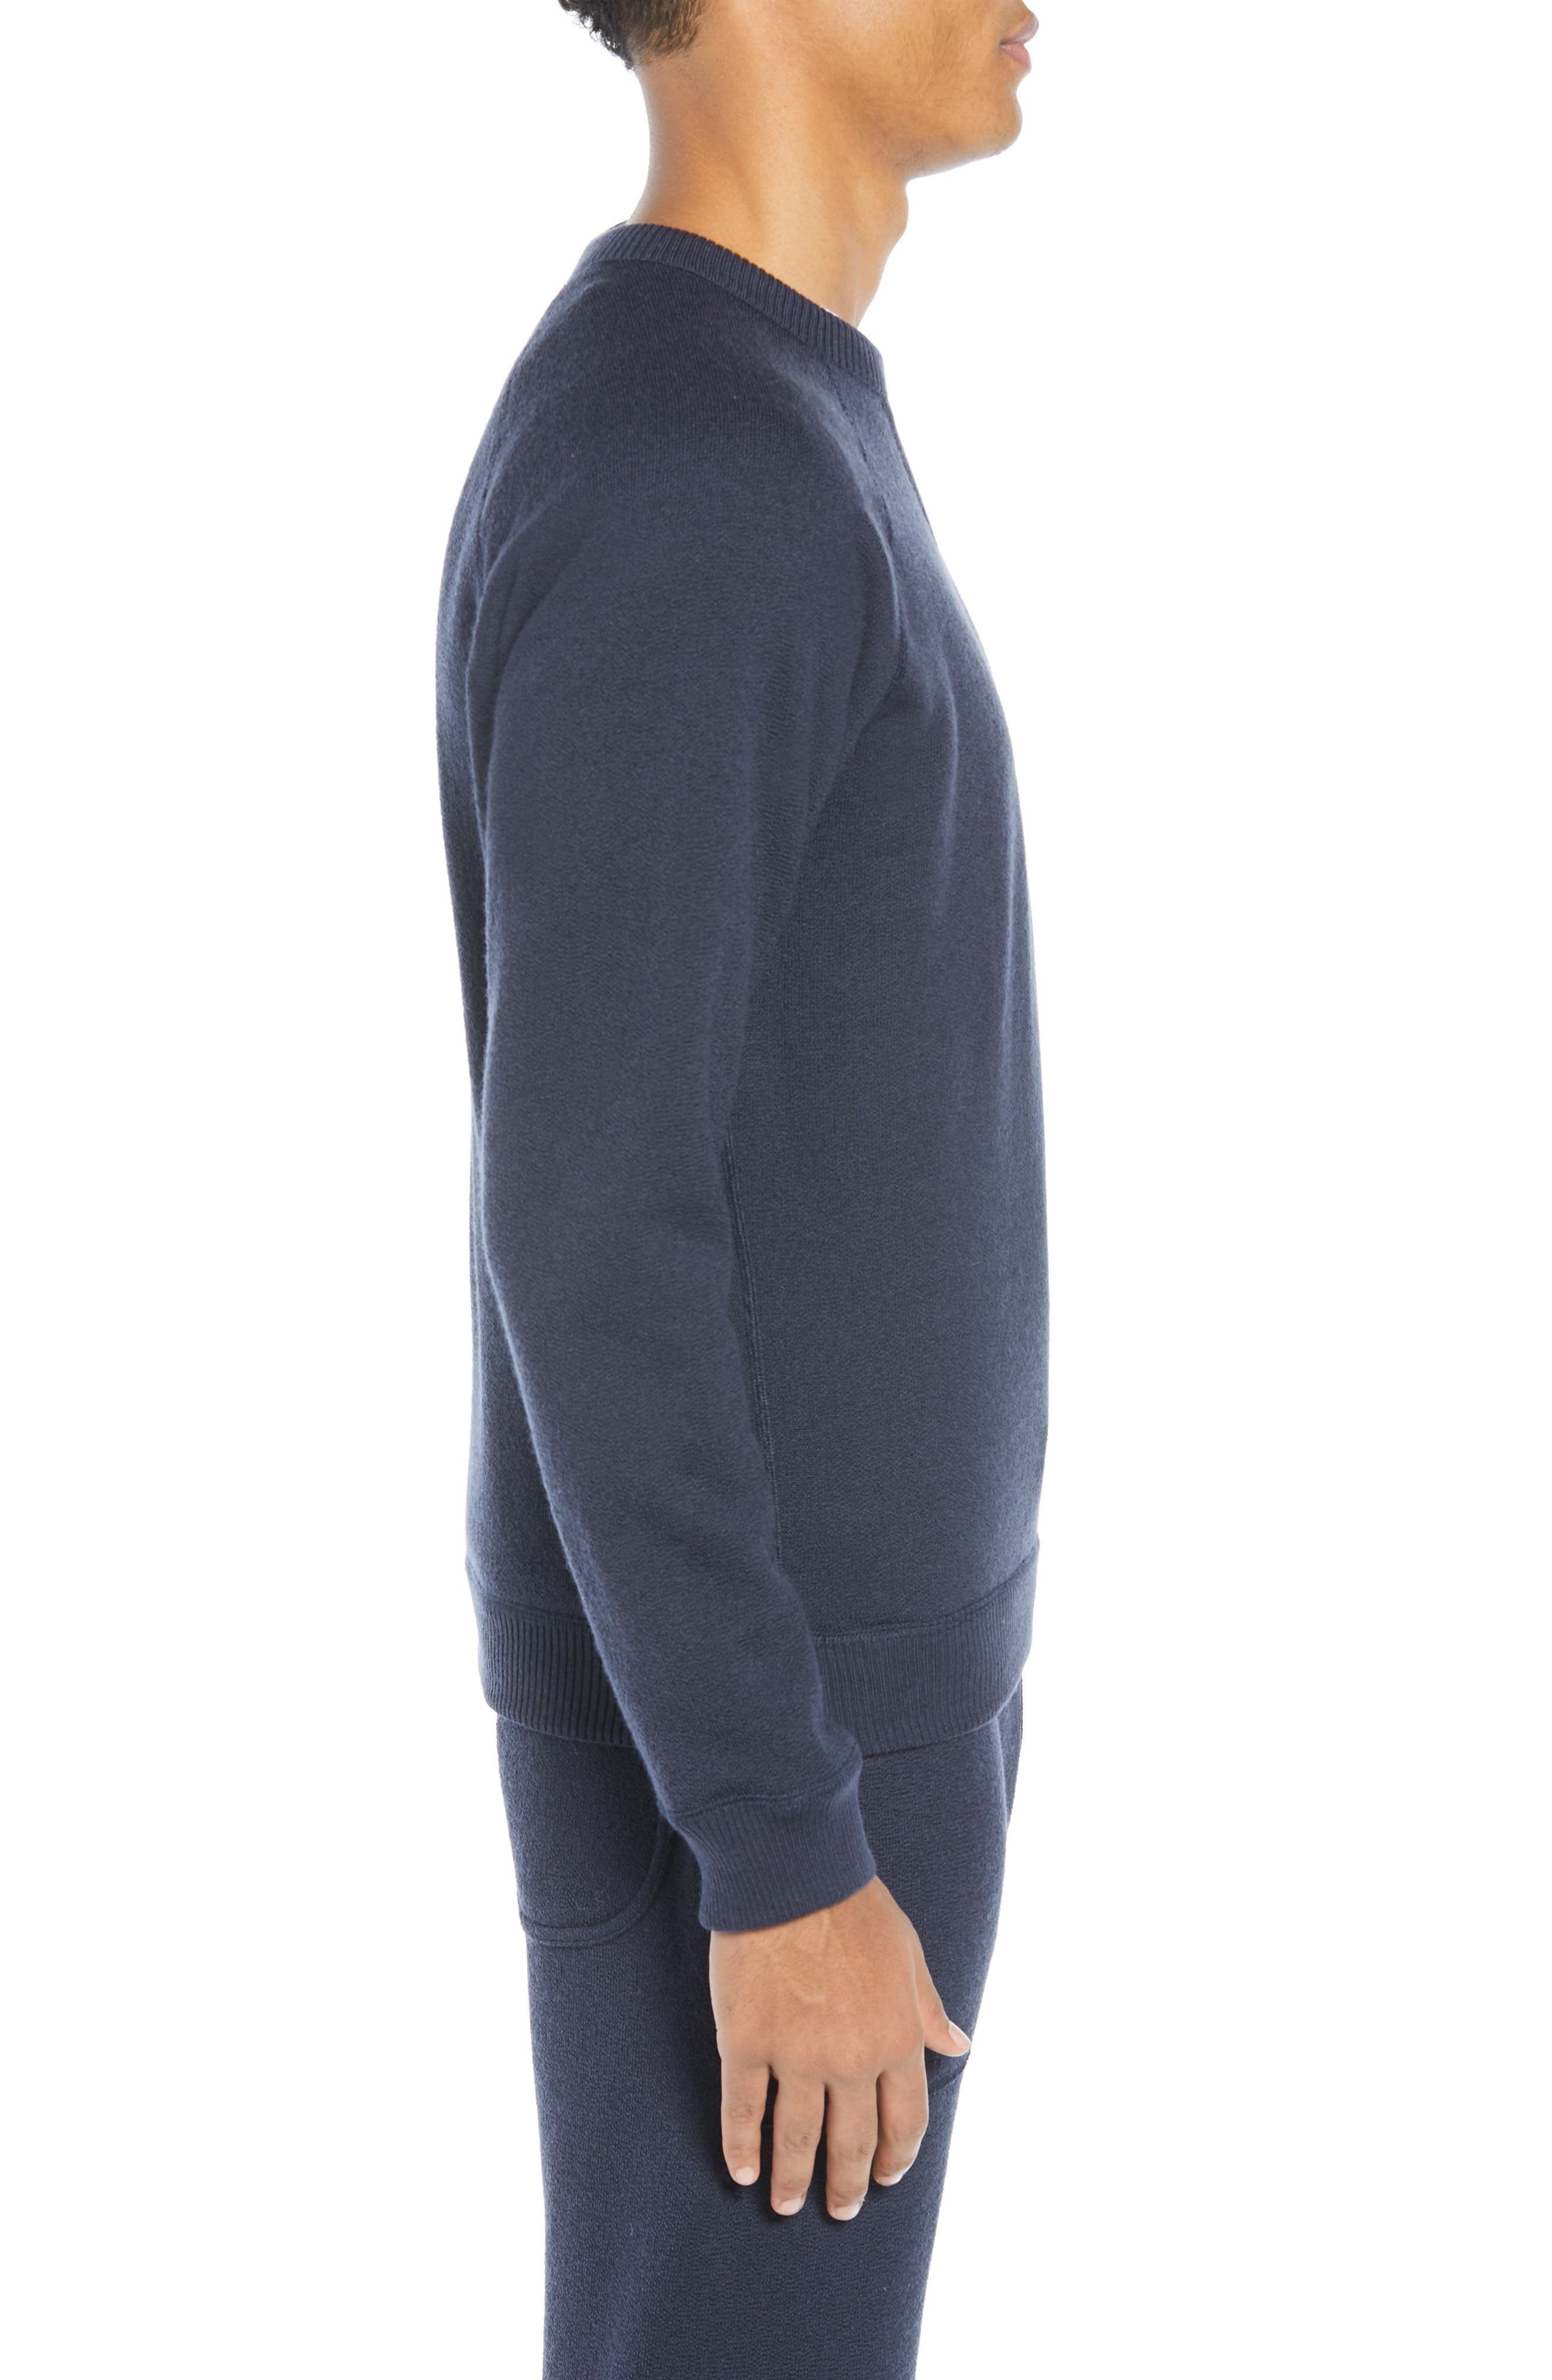 BEST MADE CO., The Merino Wool Fleece Crew Sweatshirt, Alternate thumbnail 4, color, 410